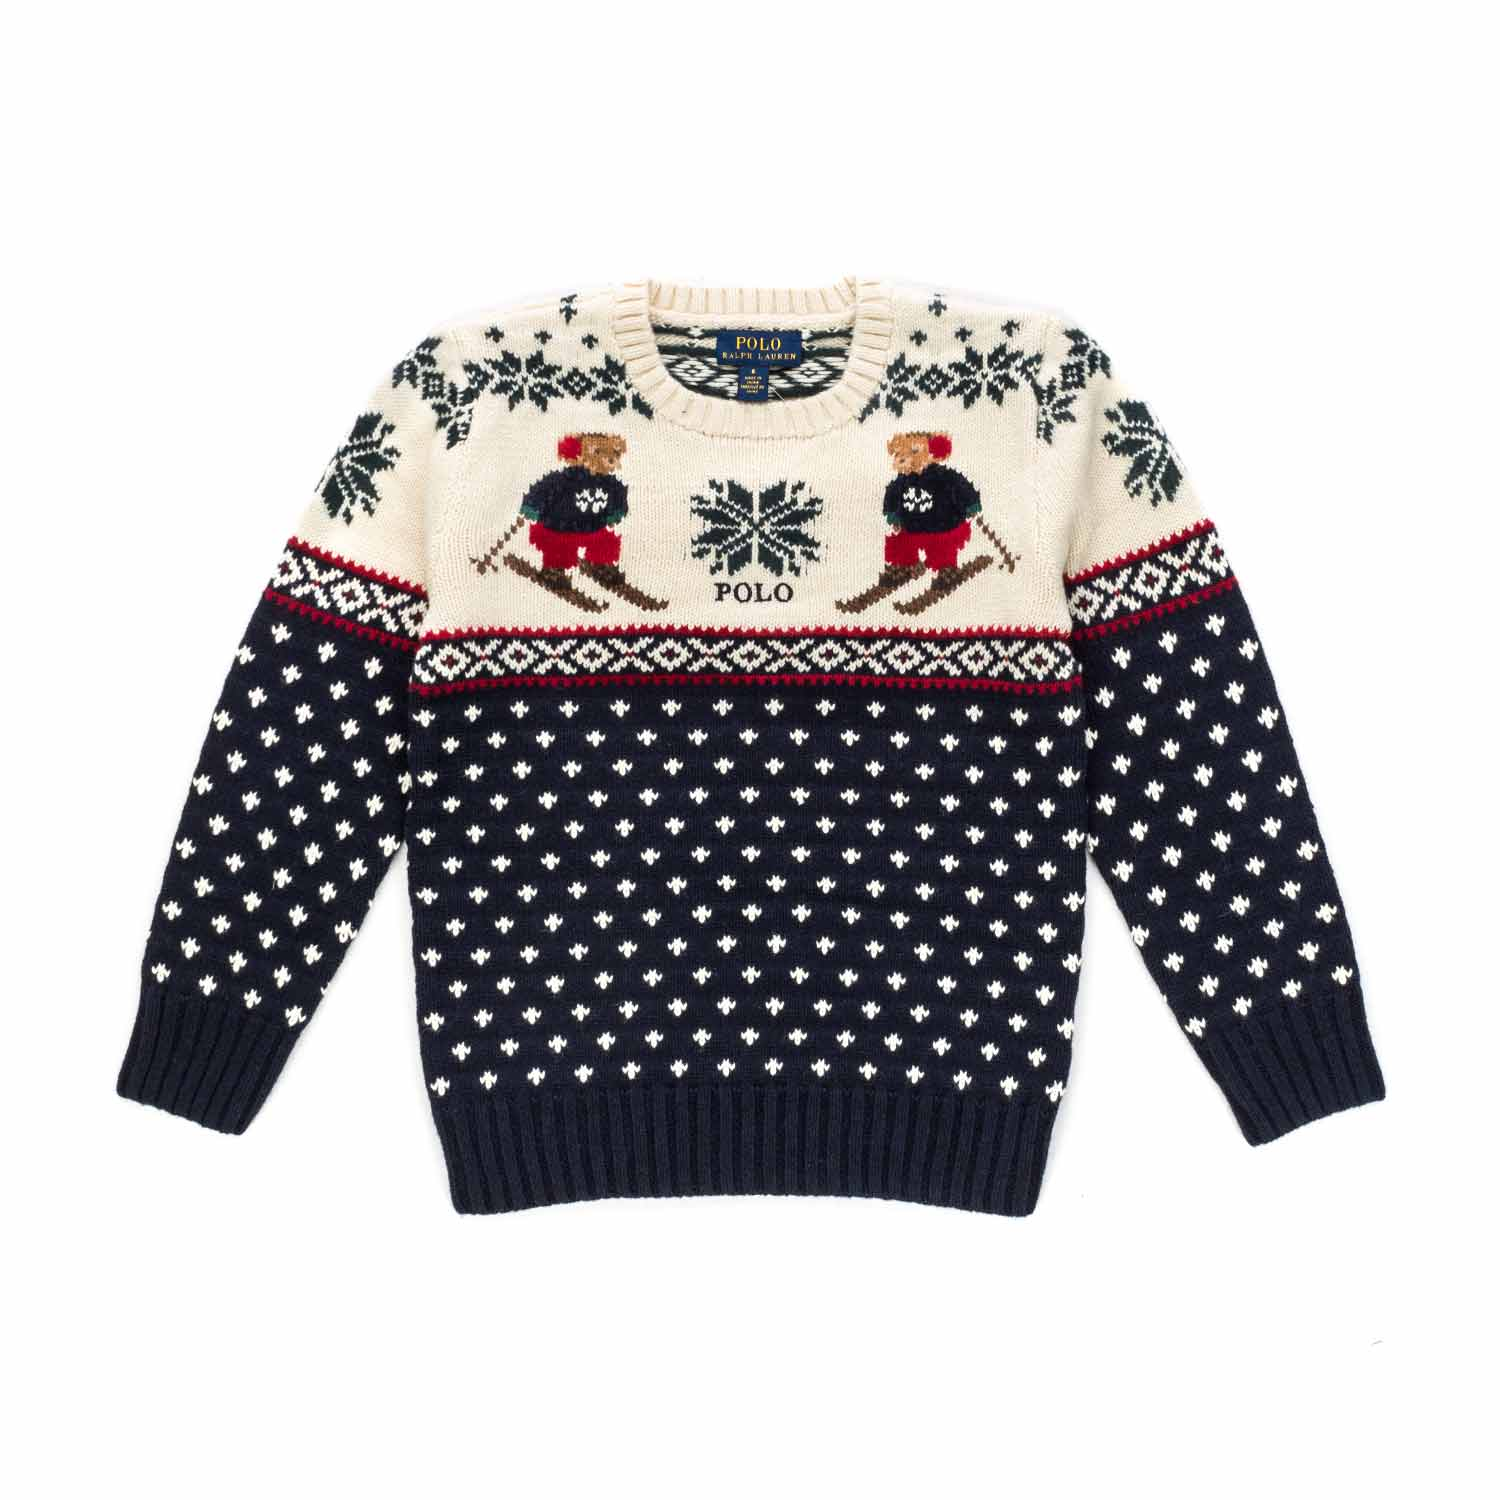 huge discount 466af f02a5 Maglione Polo Bear Bambino